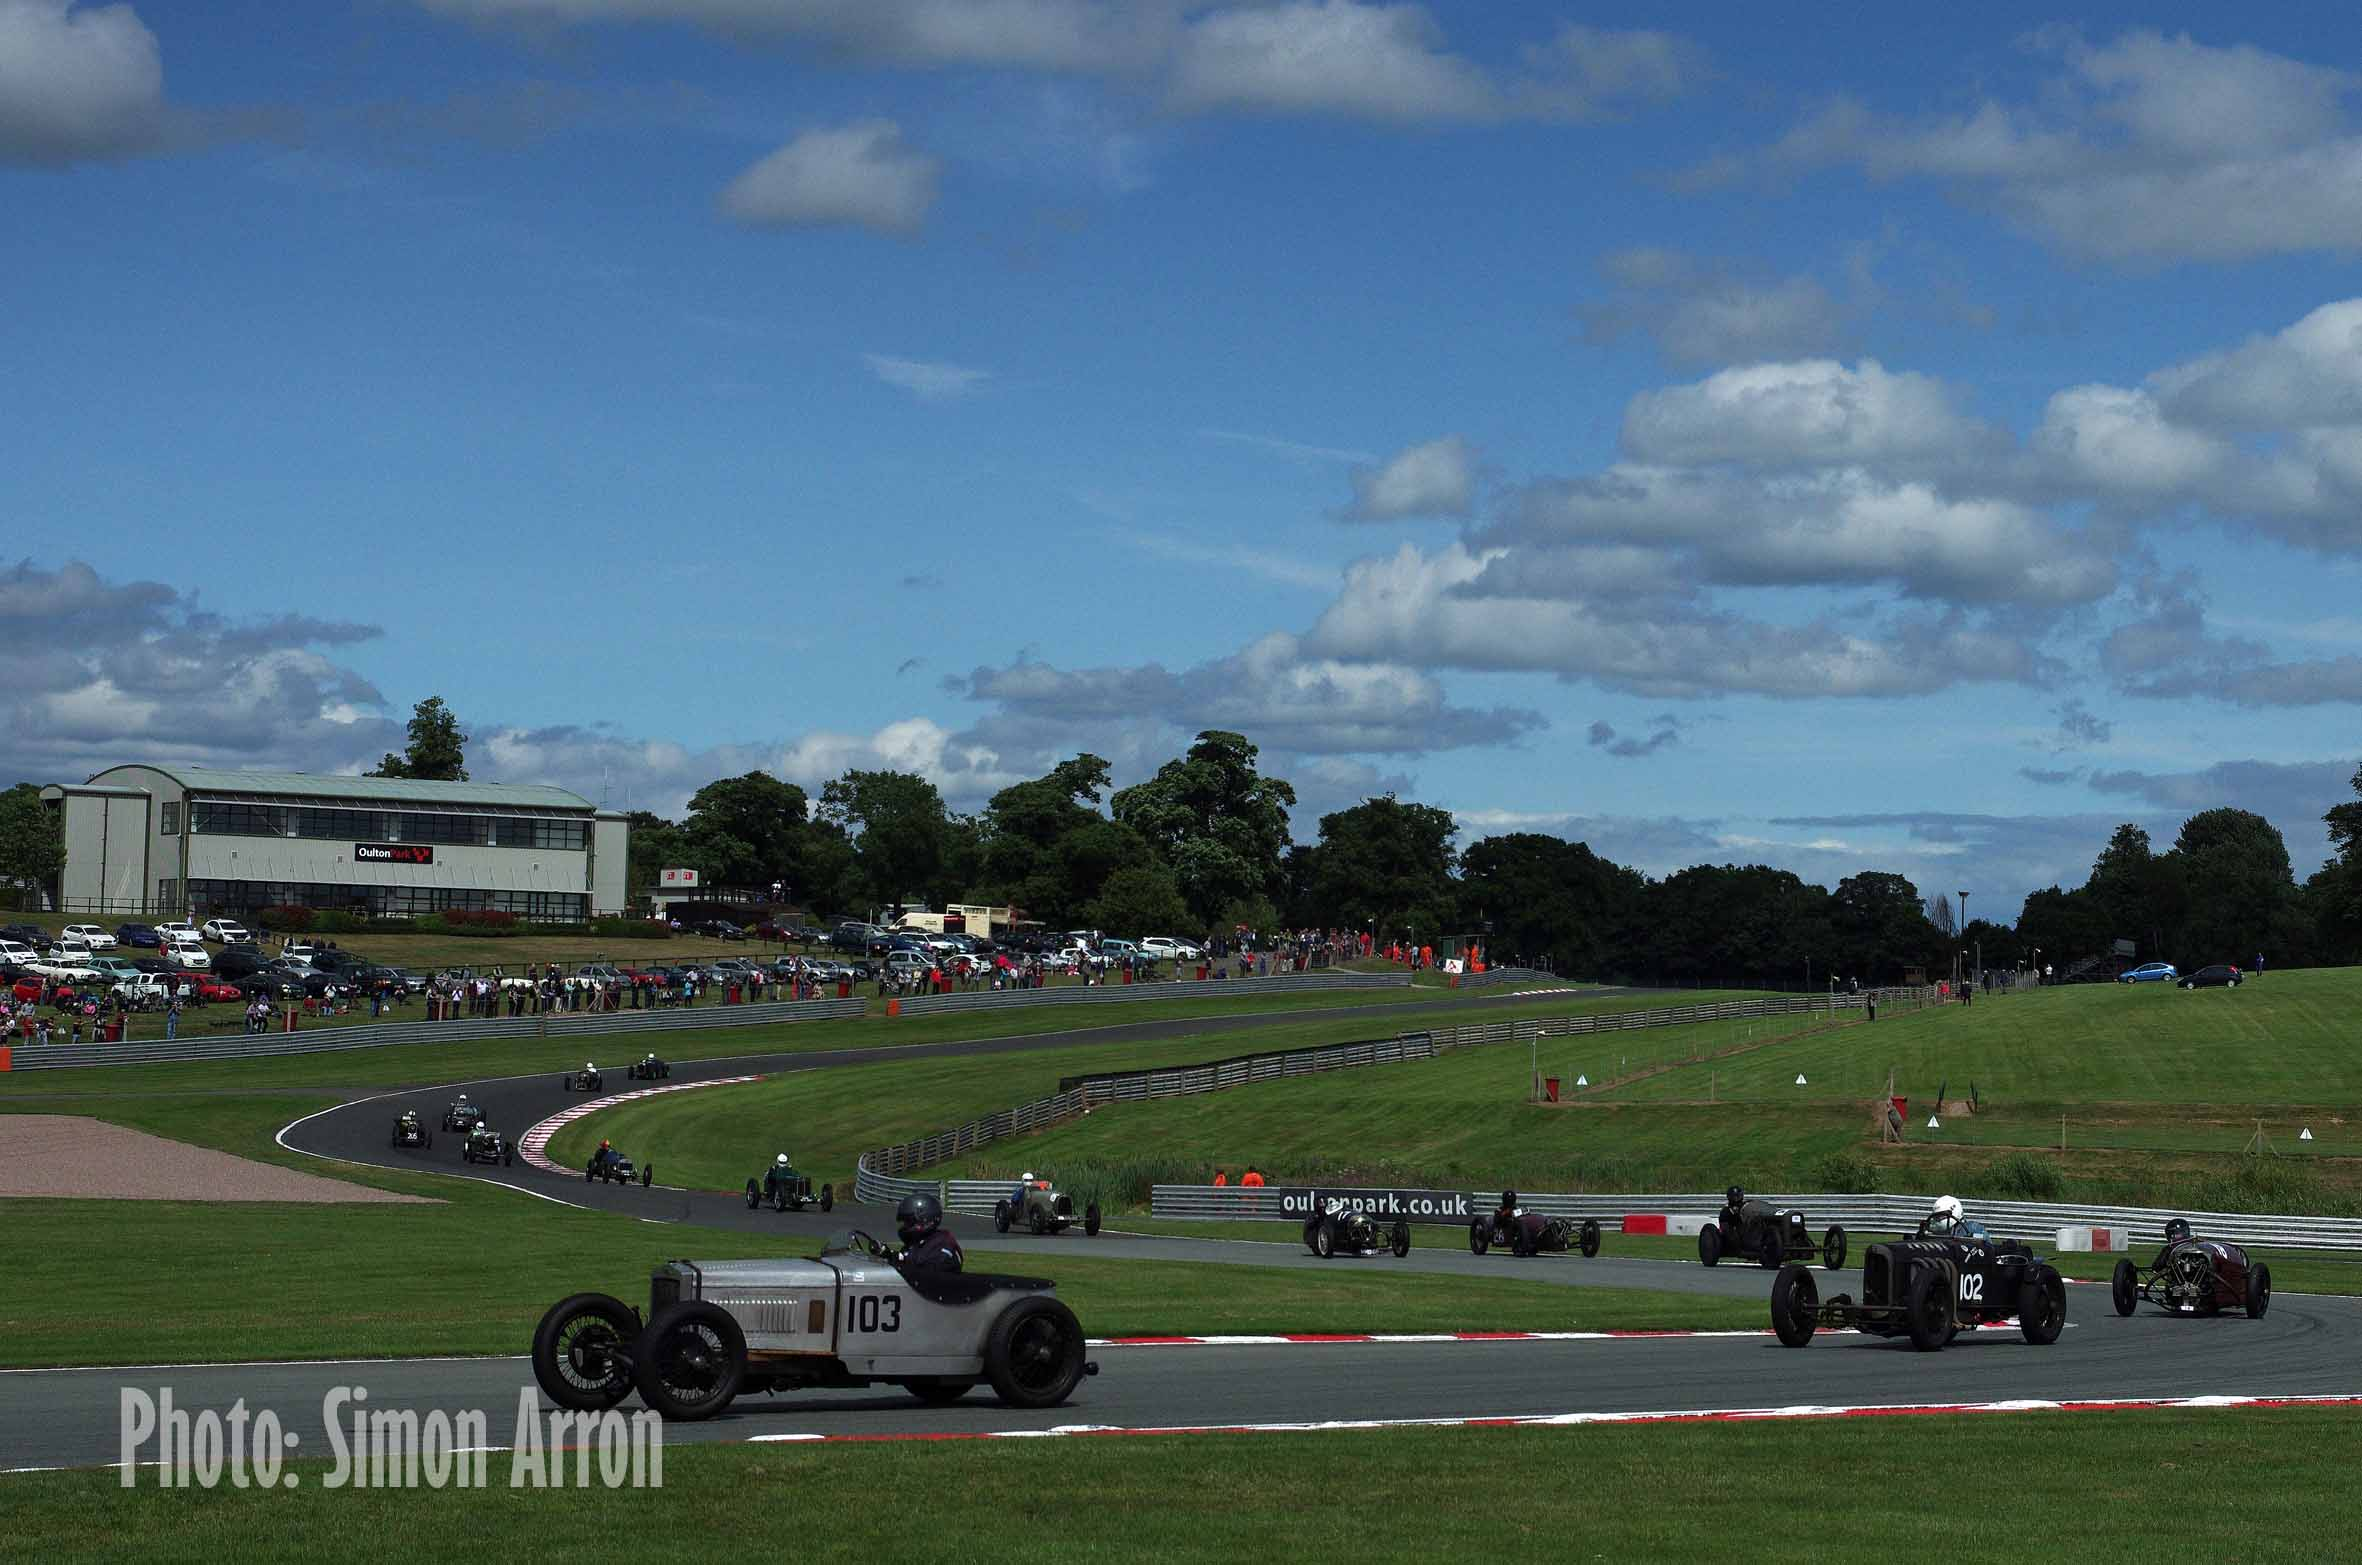 Spectating at VSCC Oulton Park this Saturday? cover